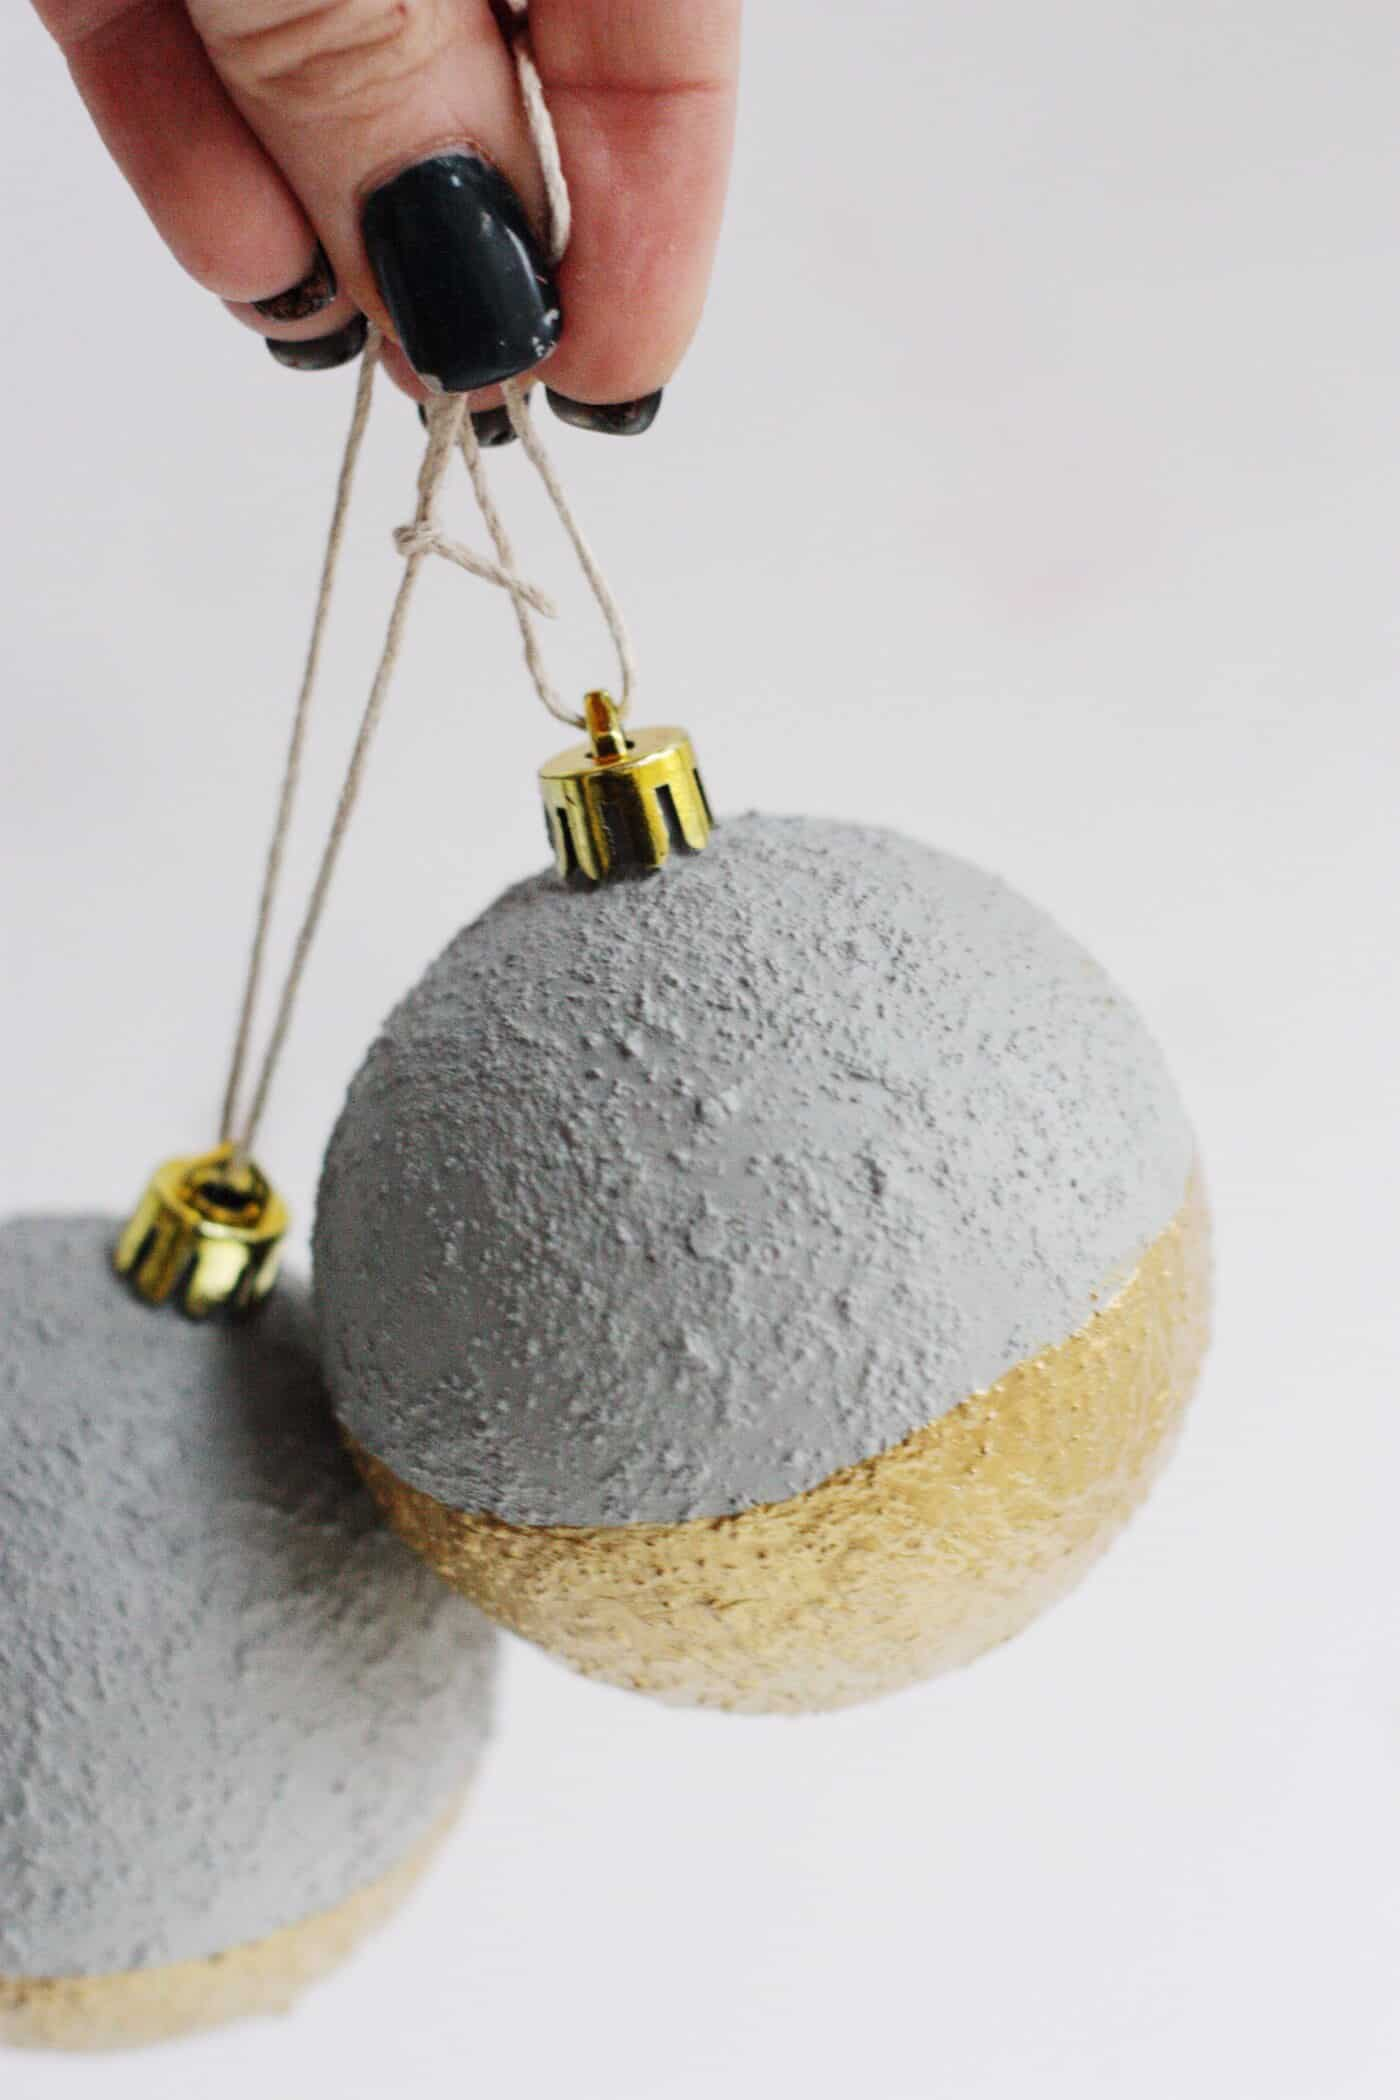 Create modern, unique concrete ornaments without the weight of actual cement! These are so easy to make and look great on your tree.